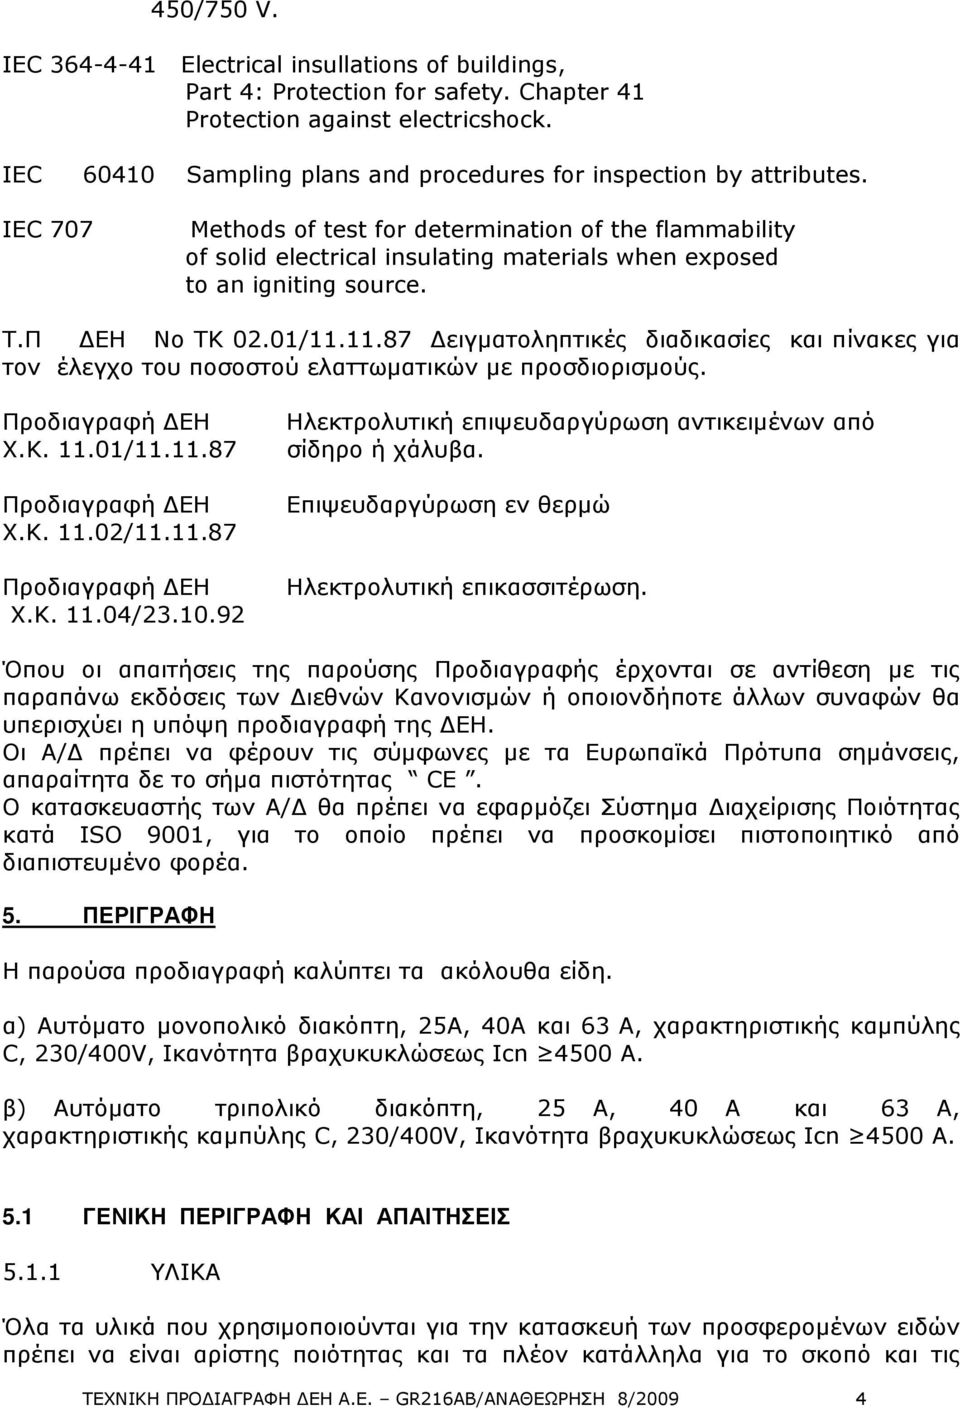 IEC 707 Methods of test for determination of the flammability of solid electrical insulating materials when exposed to an igniting source. T.Π ΕΗ Νο ΤΚ 02.01/11.